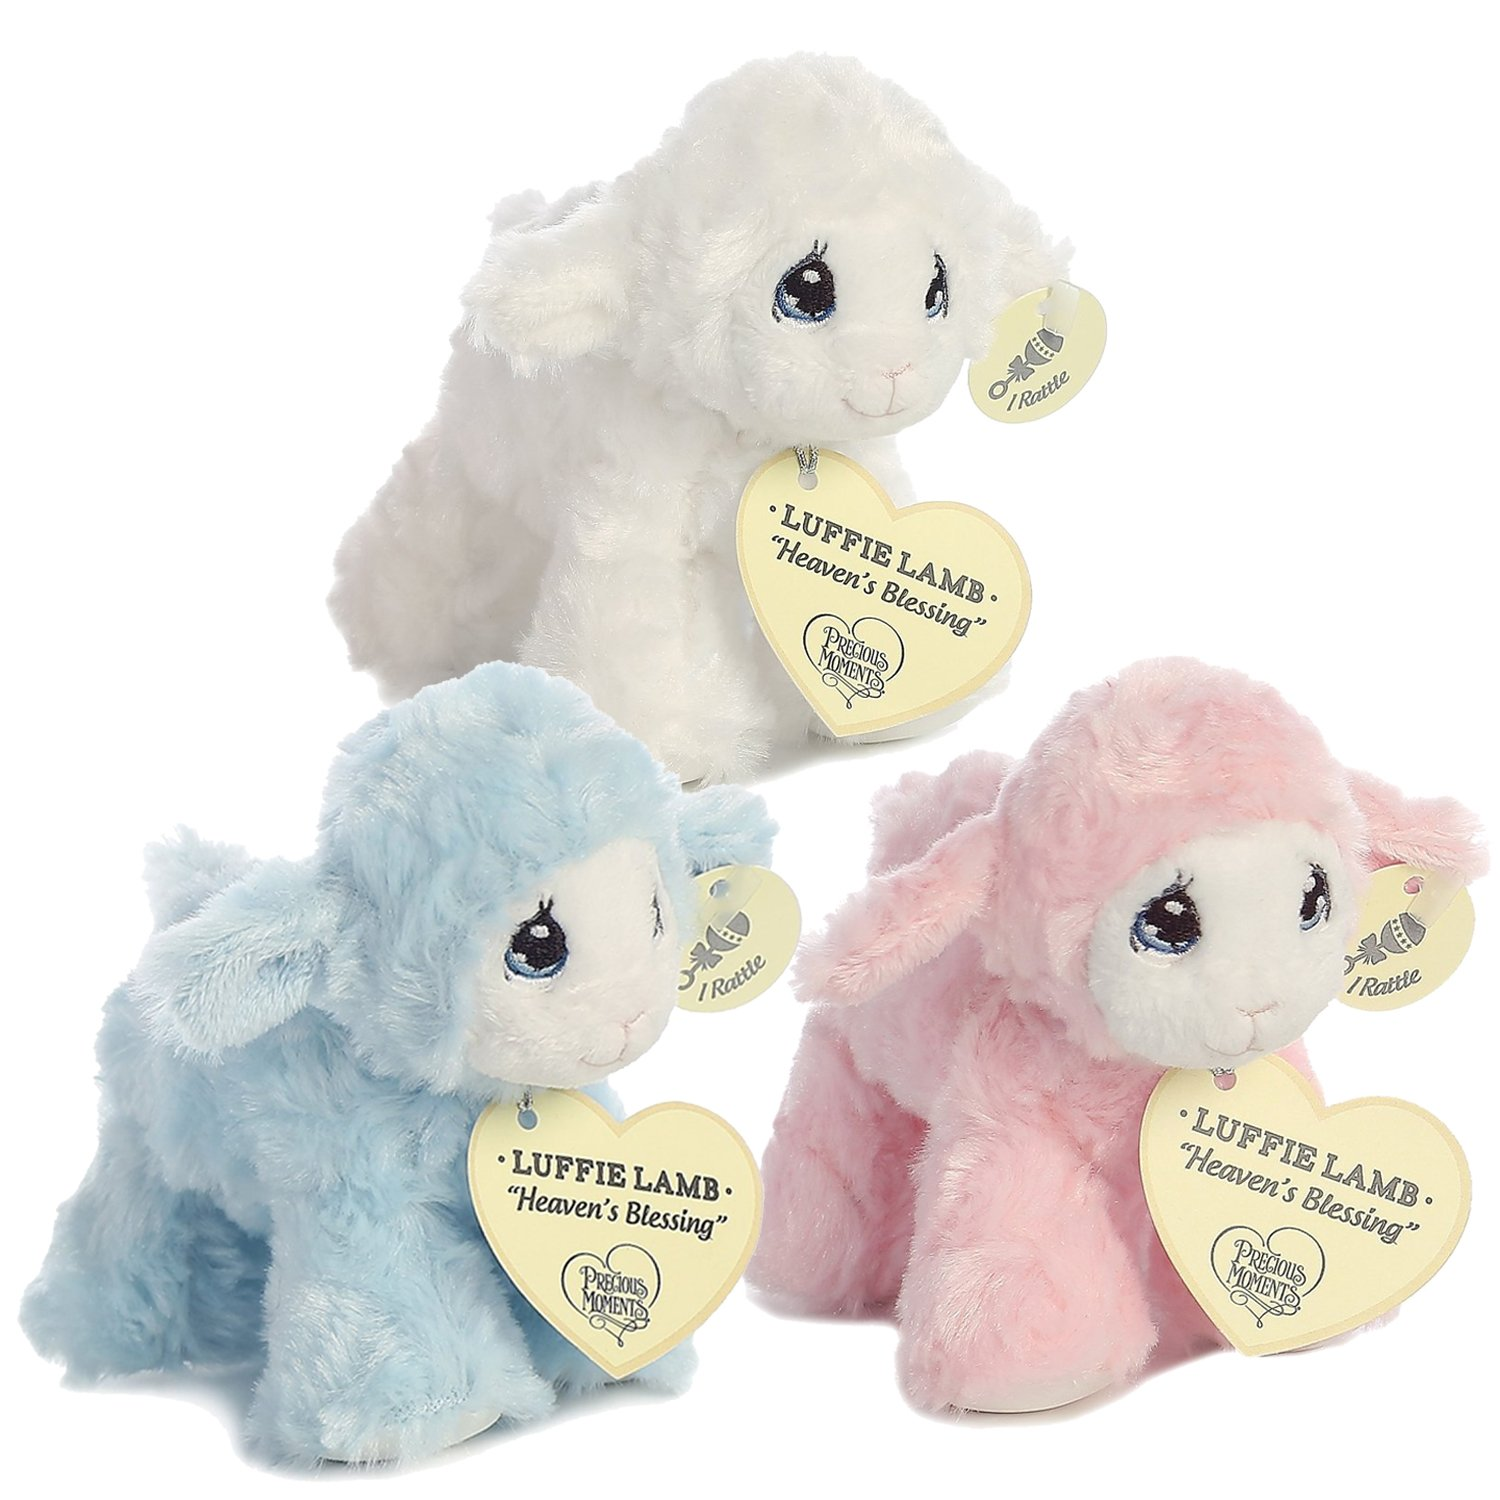 Precious Moments Luffie Lamb Heaven's Blessings Baby Rattle - Pink Aurora World